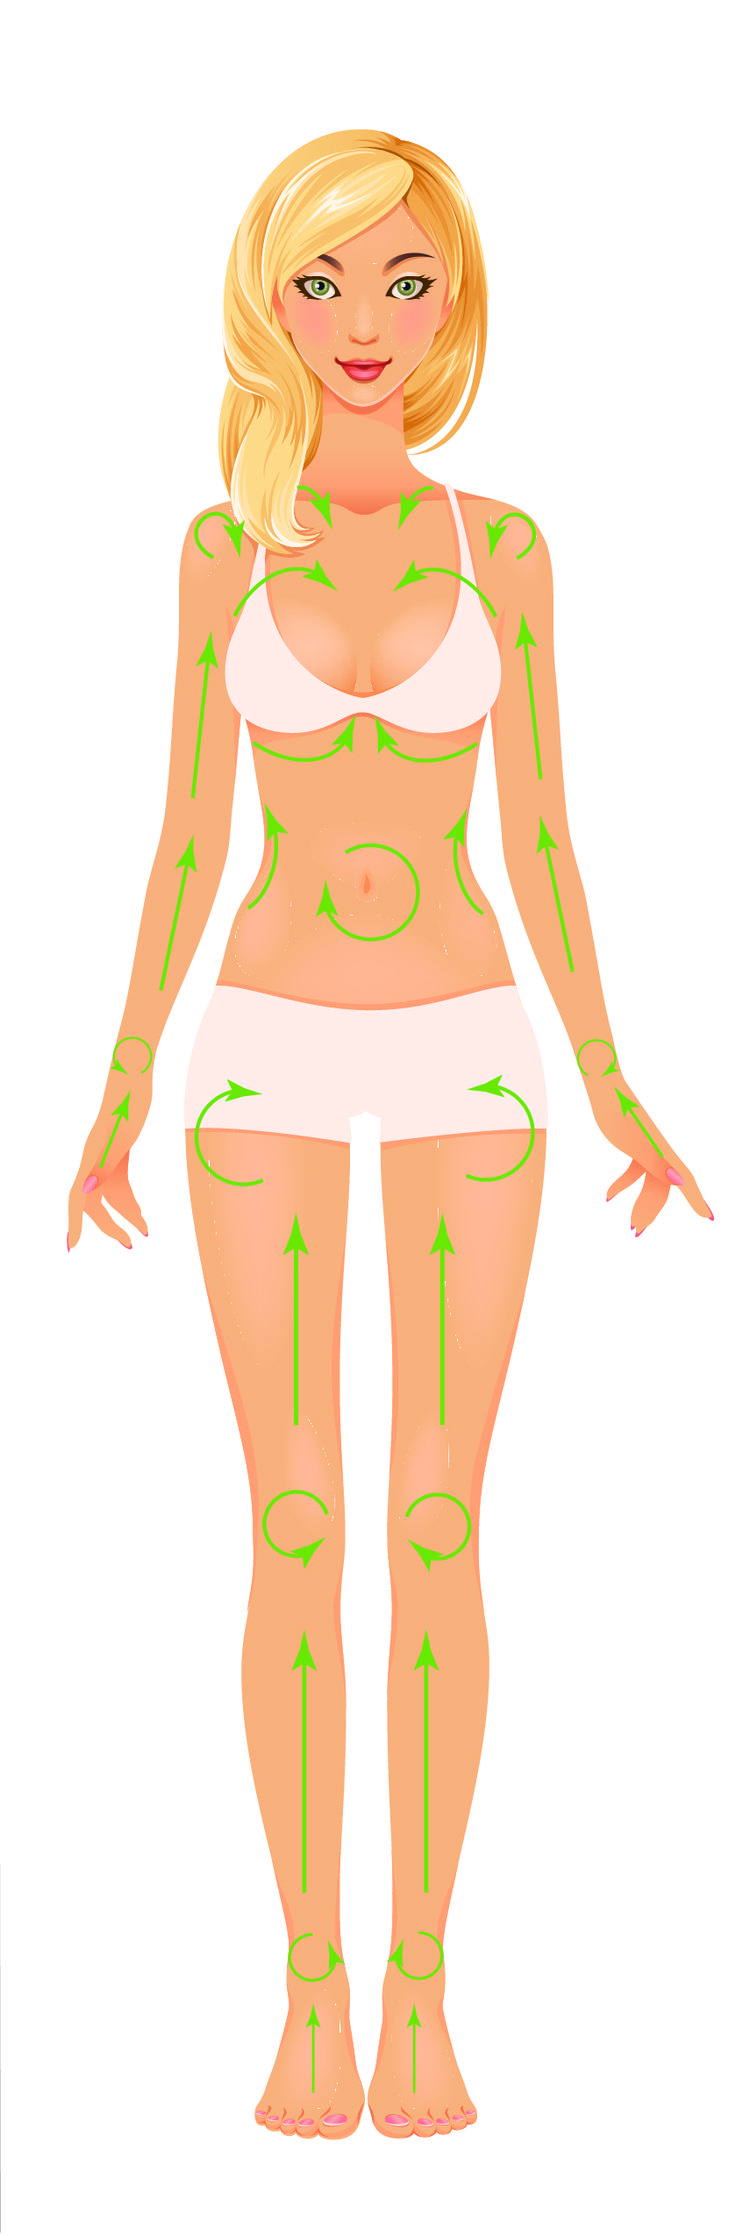 Dry skin brushing: exfoliate, stimulate immune and lymphatic systems, circulation, digestion